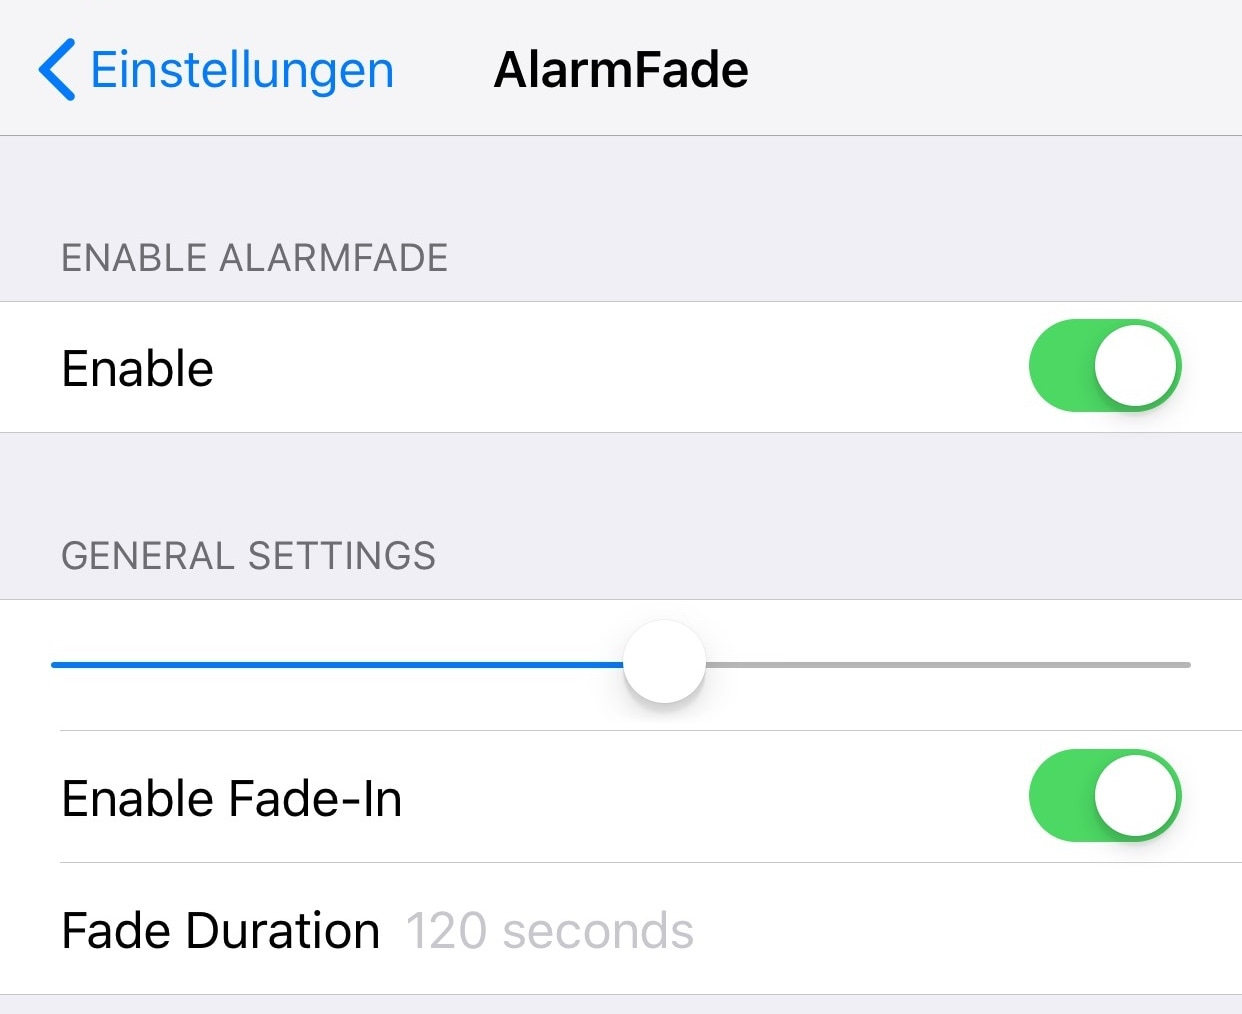 AlarmFade makes waking up to morning alarms on your iPhone